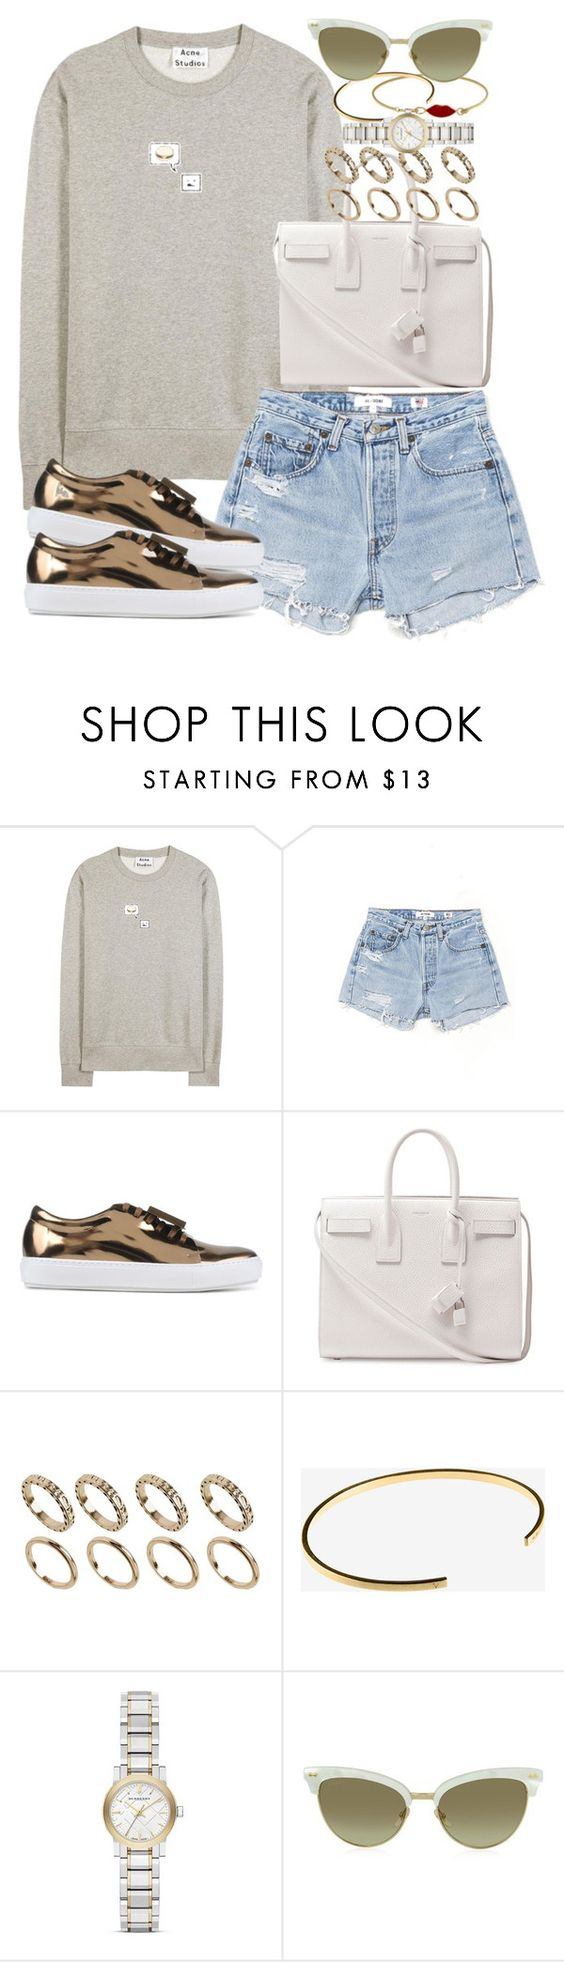 """""""Sin título #3964"""" by hellomissapple on Polyvore featuring moda, Acne Studios, RE/DONE, Yves Saint Laurent, ALDO, Le Gramme, Burberry y Gucci"""